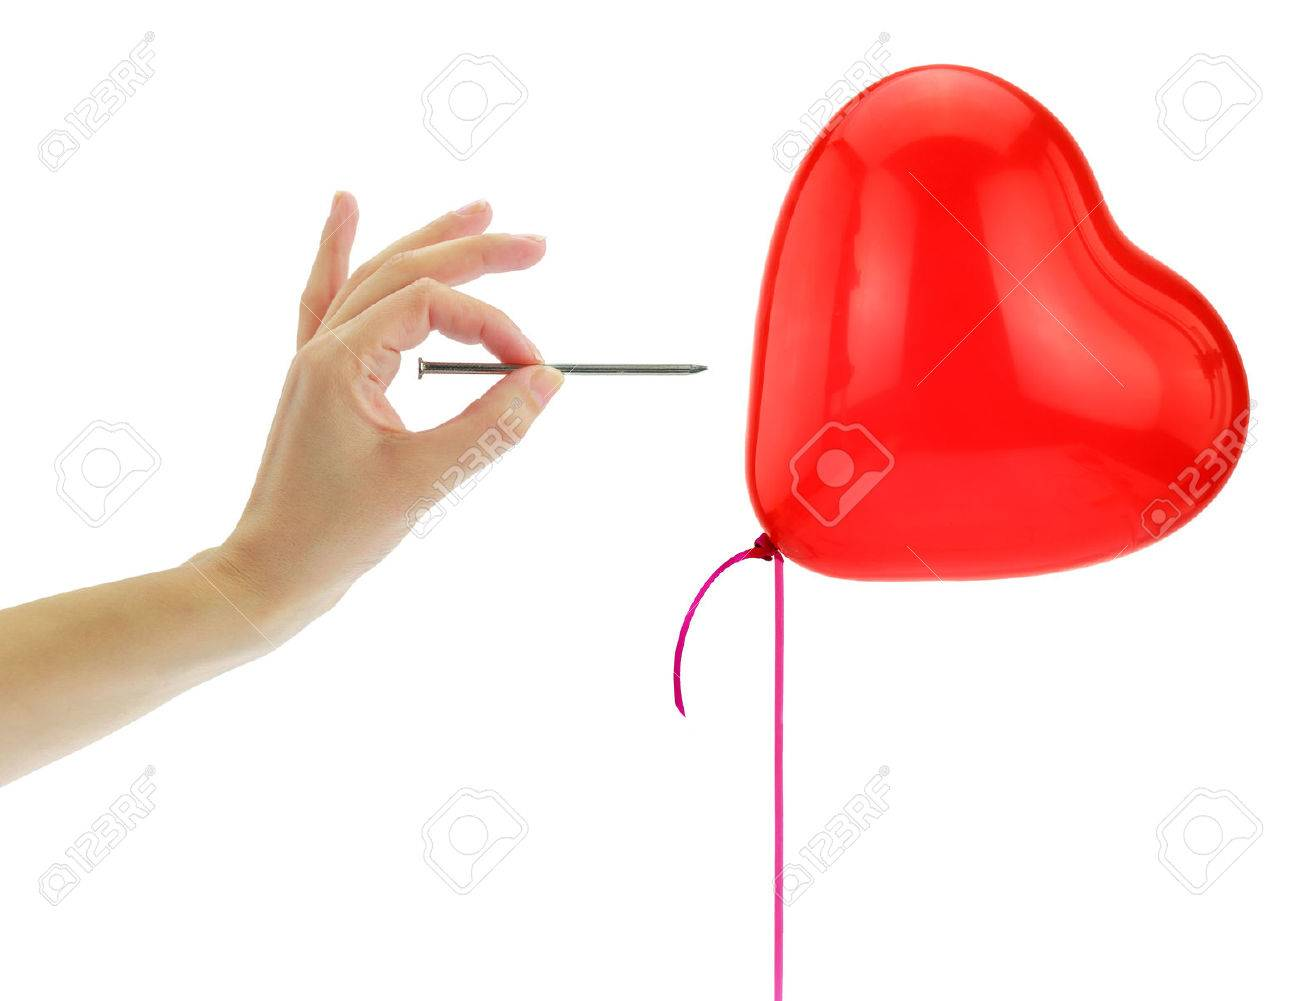 Nail about to pop a heart balloon isolated on white Stock Photo - 38694410